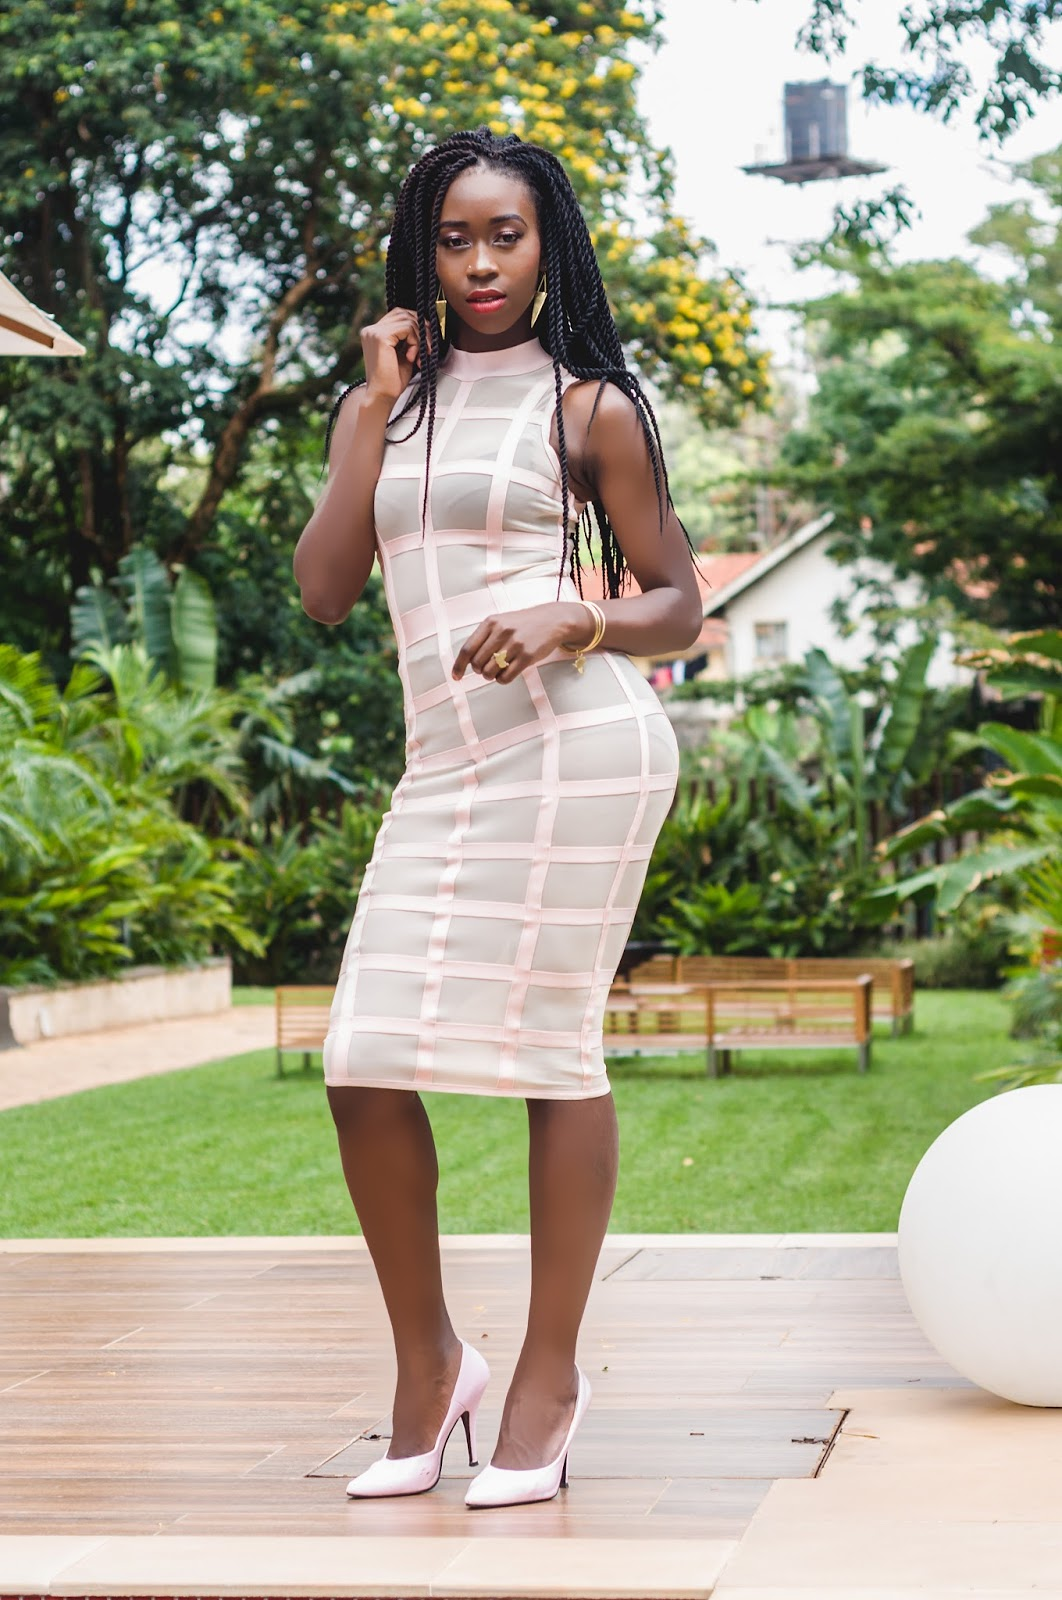 sheer dresses, style with Ezil, ezil, Kenyan fashion blogger, How to style a sheer dresss,